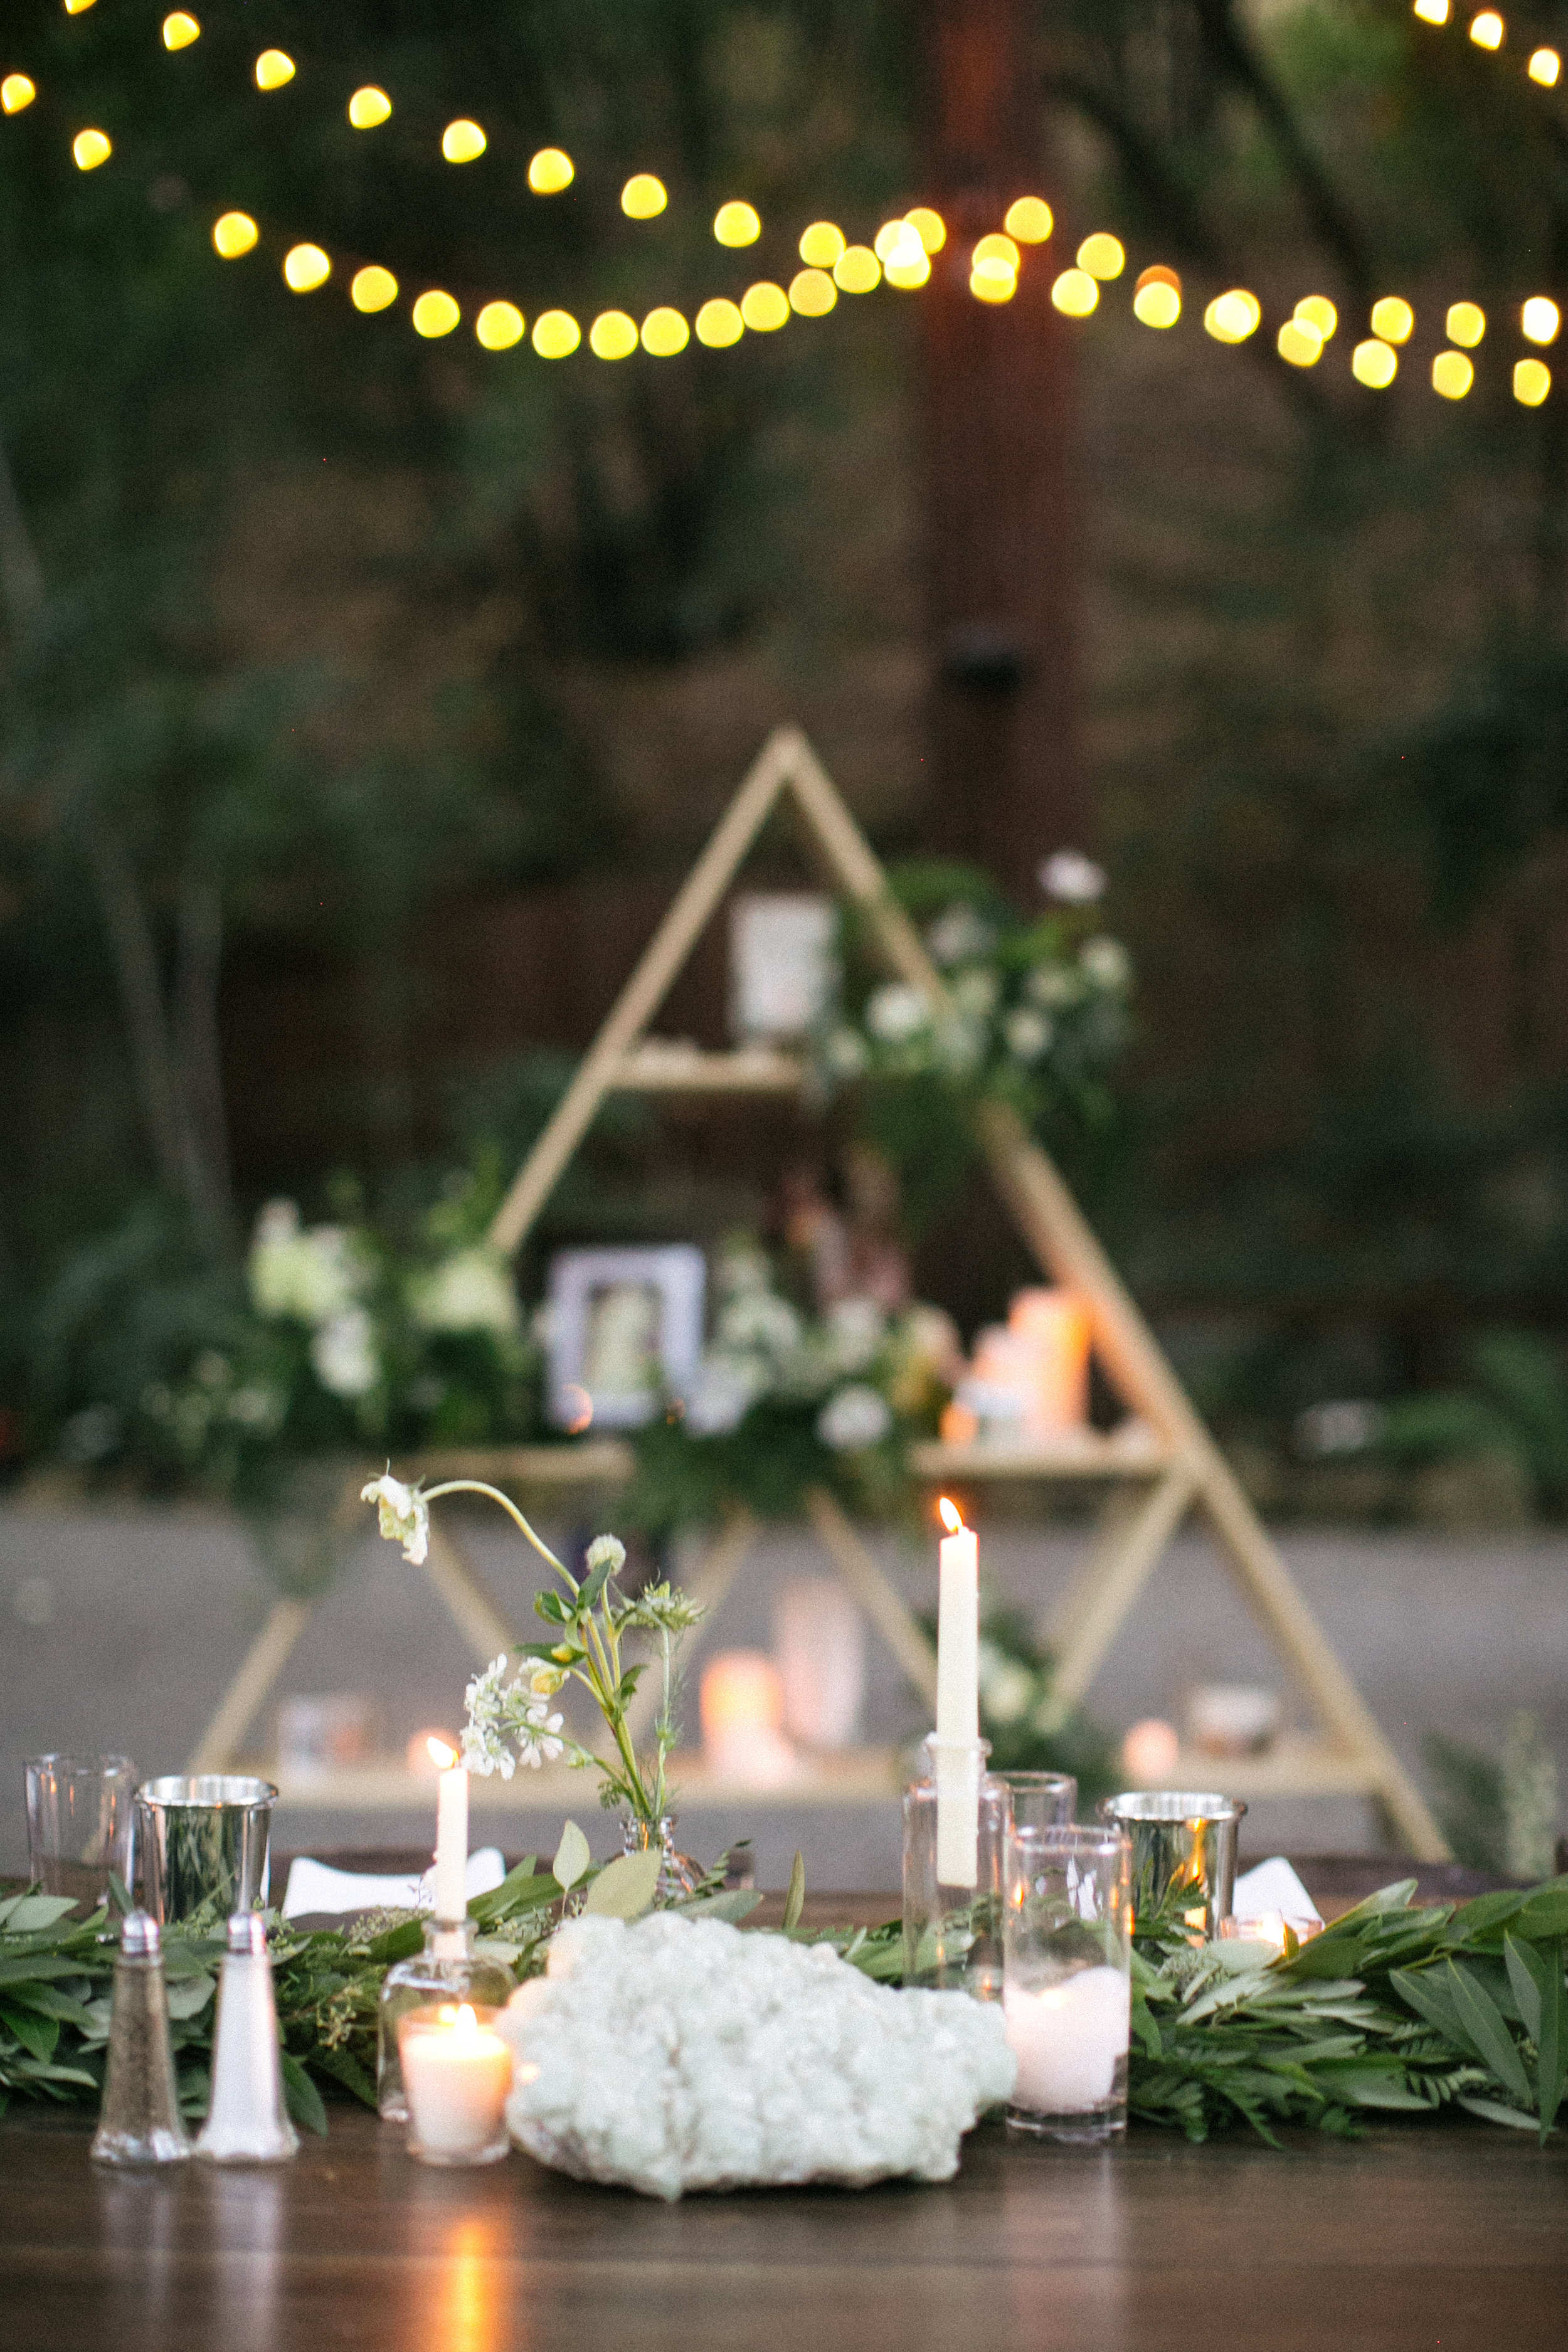 Brit and Will - Northern California Wedding Inspiration - Tablesetting Insp Nichols Photography